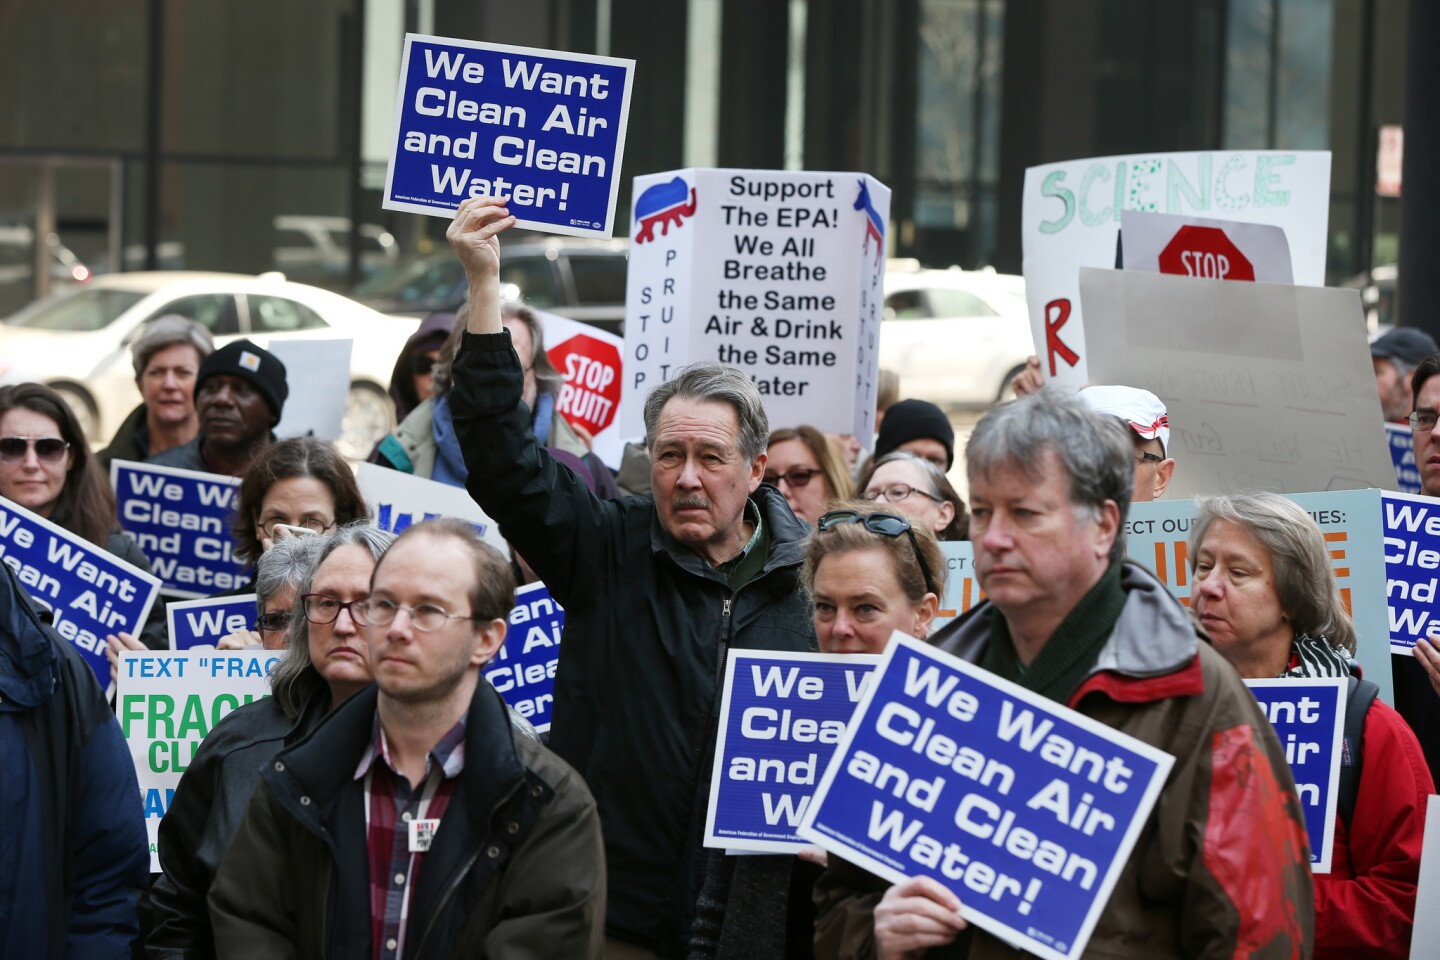 Larry Hoellwarth, center, joins Environmental Protection Agency staffers rallying in Federal Plaza in Chicago on Monday, Feb. 6, 2017, against the nomination of Scott Pruitt as agency head.